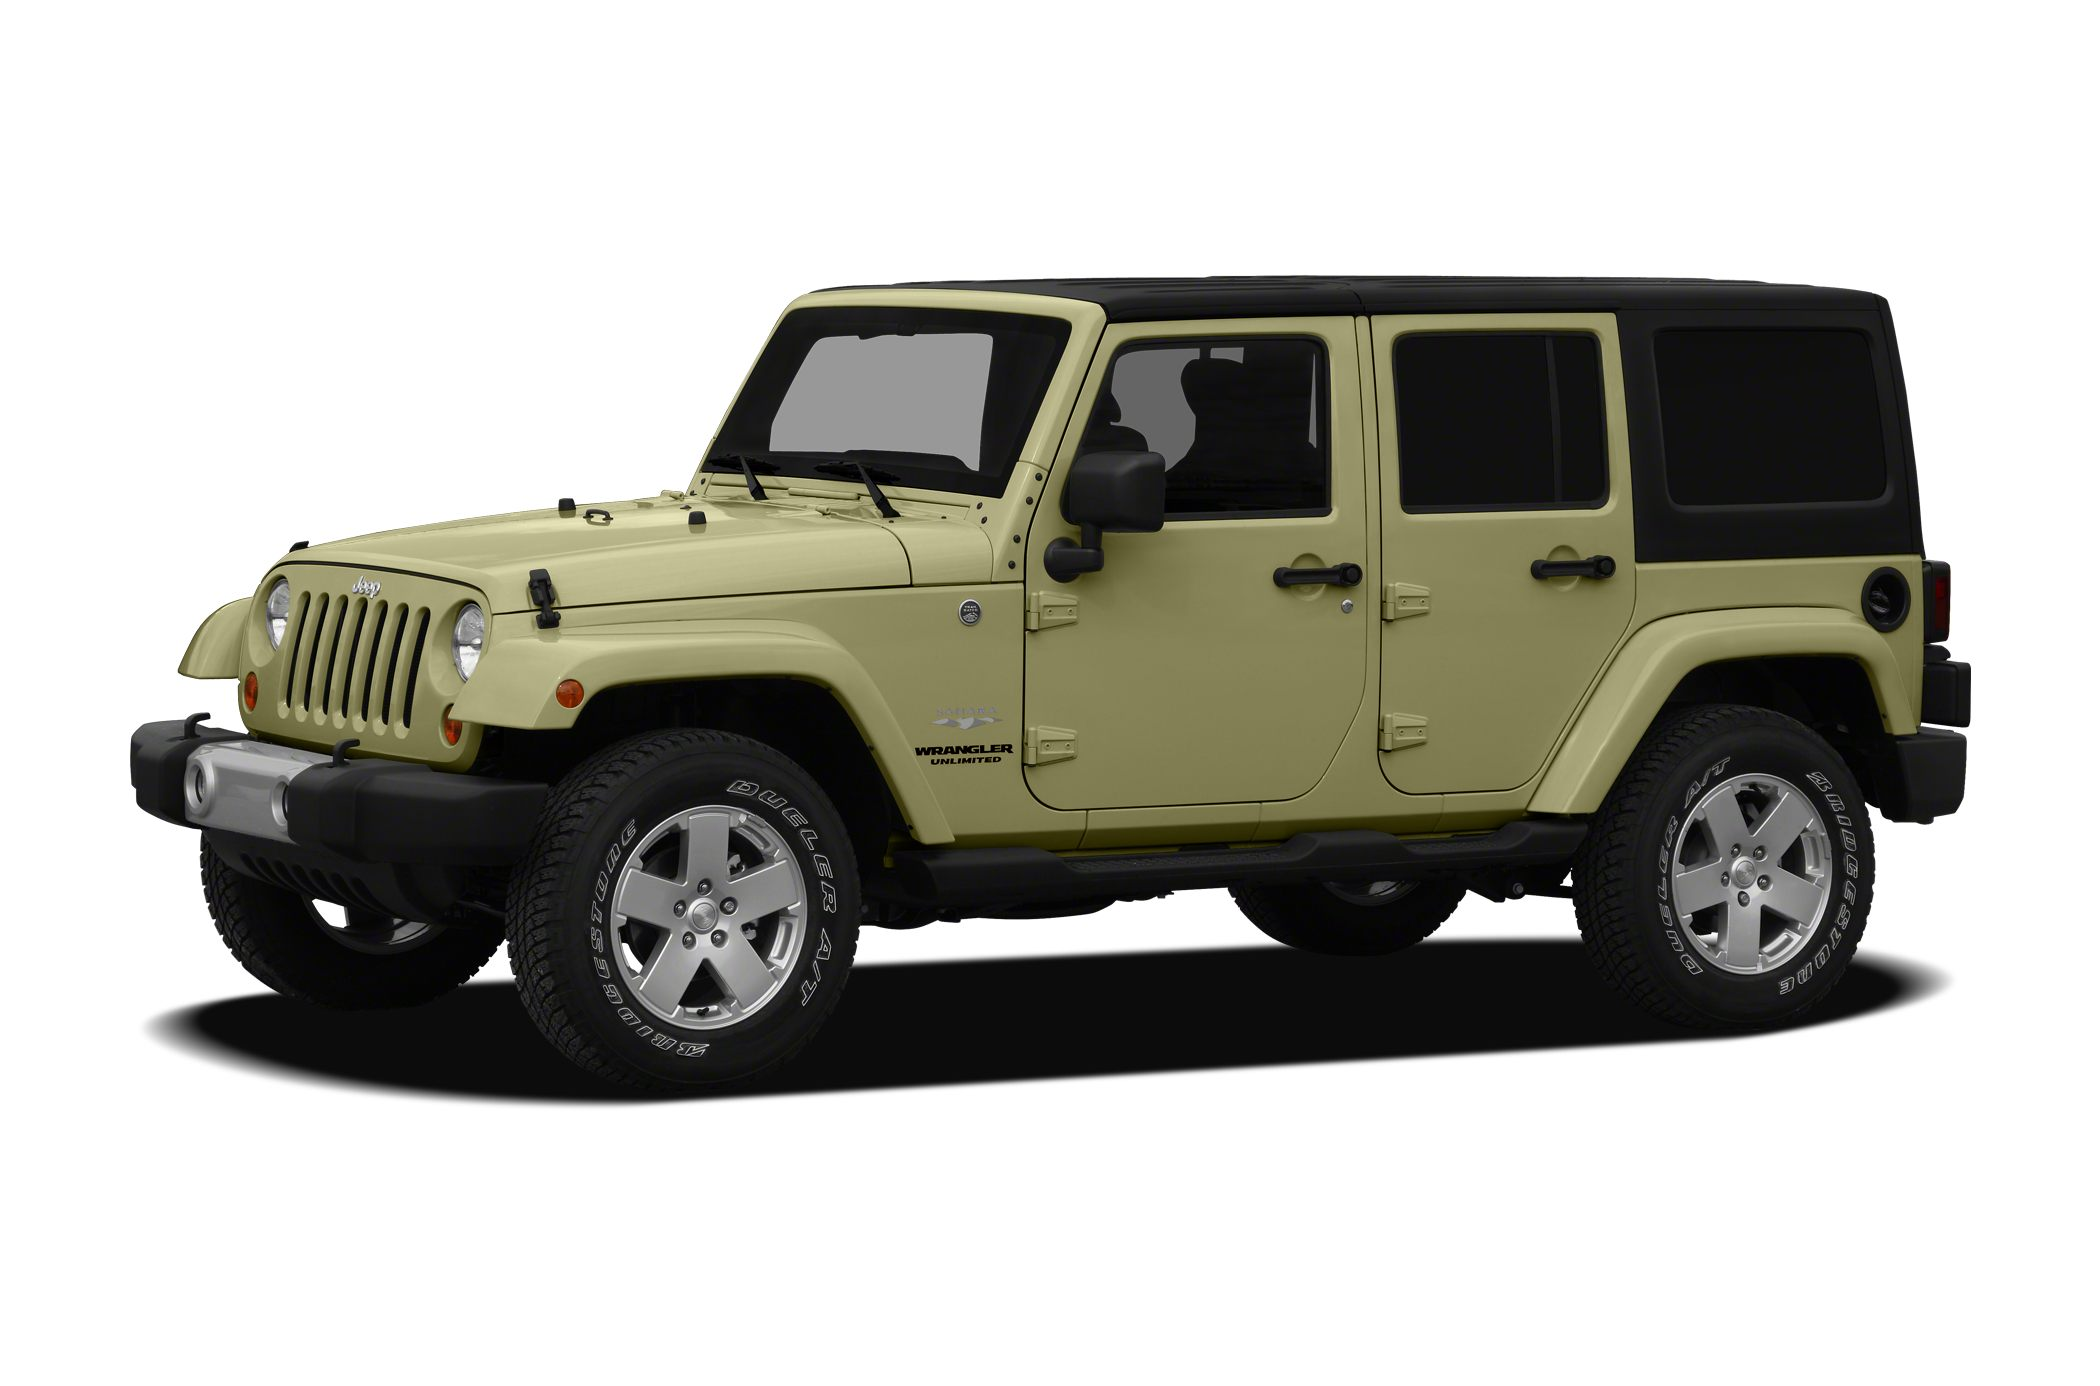 2012 Jeep Wrangler Unlimited Sport RHD SUV for sale in Vinita for $21,995 with 78,141 miles.